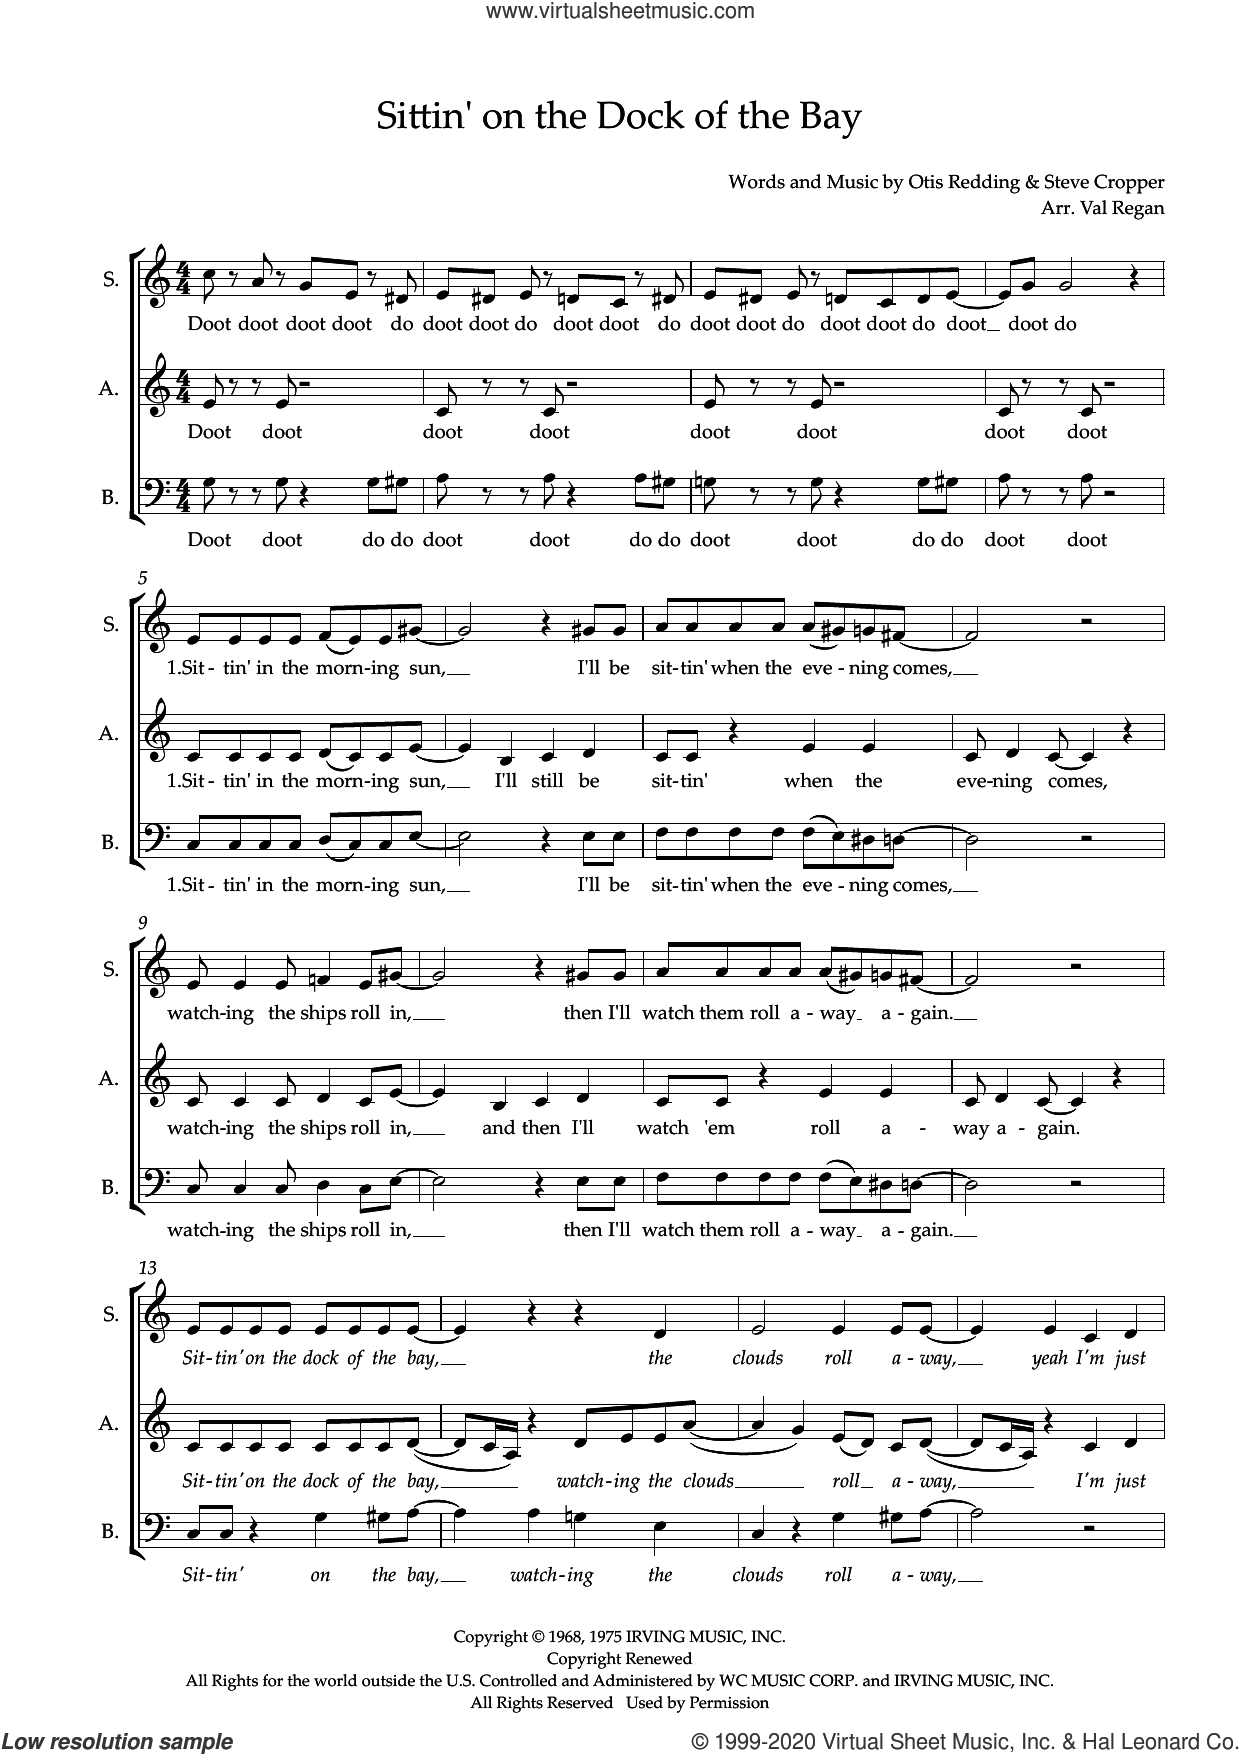 (Sittin' On) The Dock of the Bay (arr. Val Regan) sheet music for choir (SAB: soprano, alto, bass) by Otis Redding, Val Regan and Steve Cropper, intermediate skill level